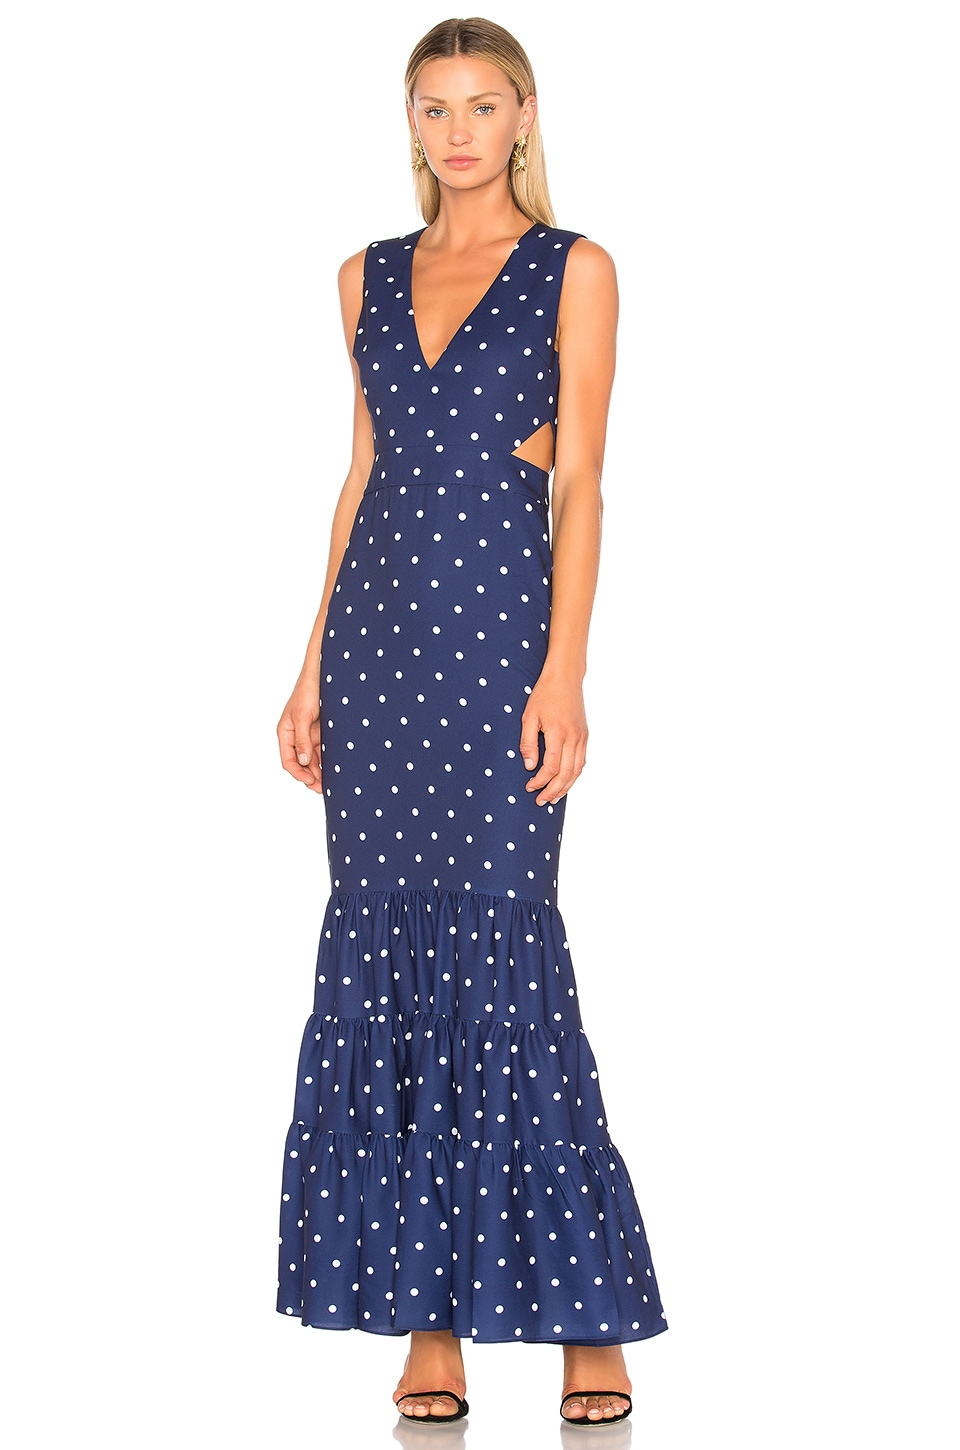 x Revolve Alexas Dress by FAME AND PARTNERS